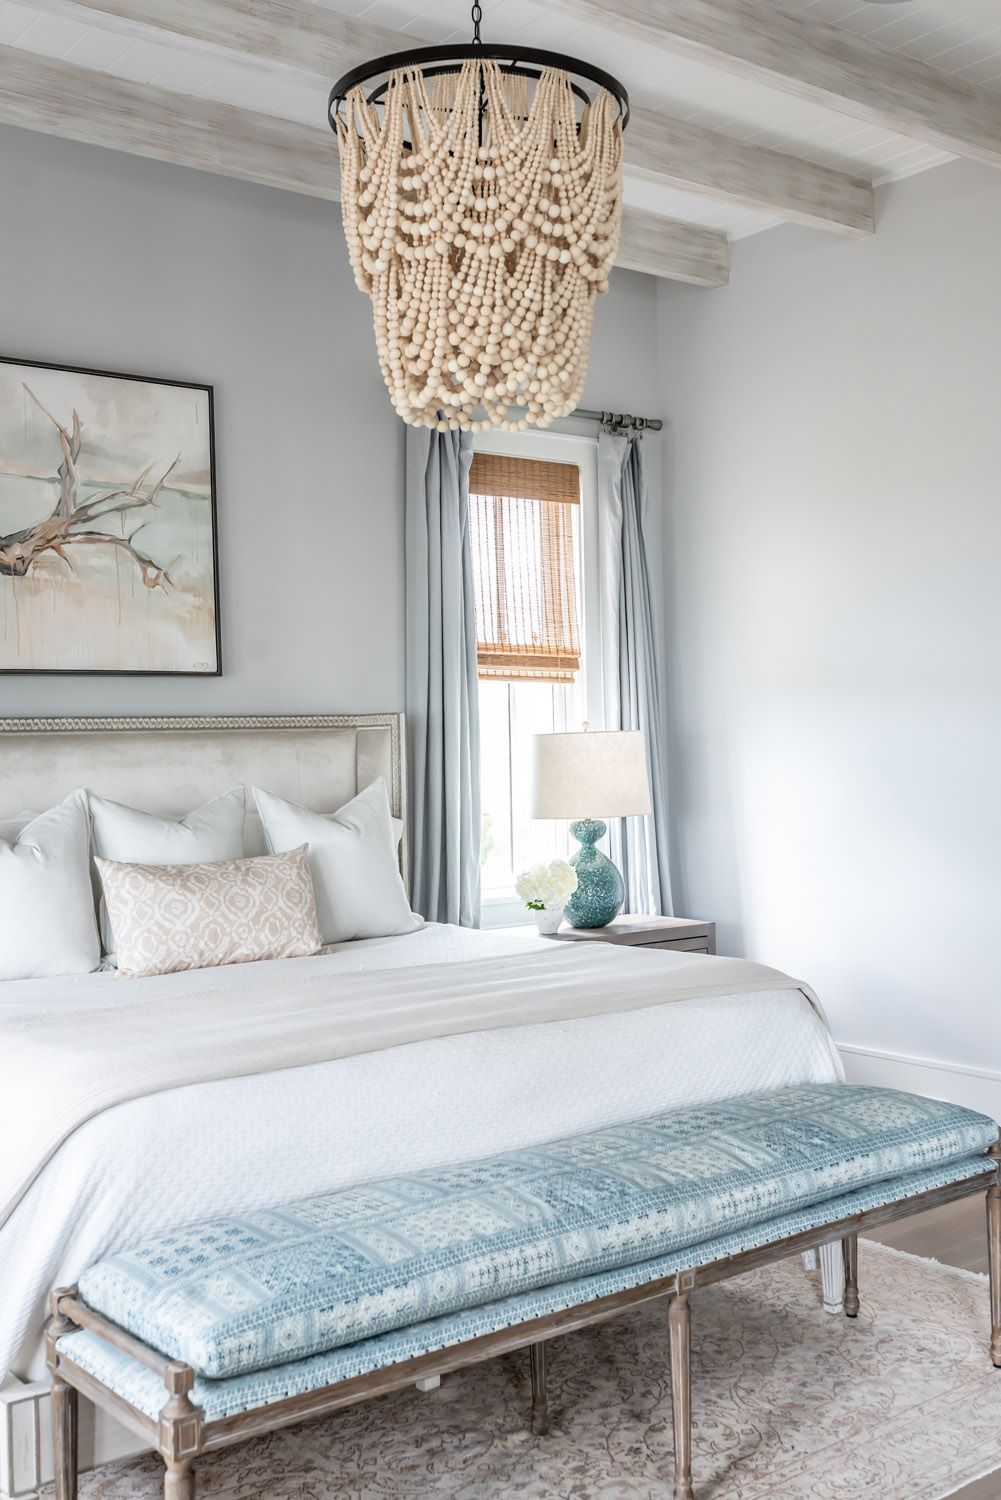 Master Bedroom Designs That Are Inspiring Me Right Now - Bless'er House #coastalbedrooms